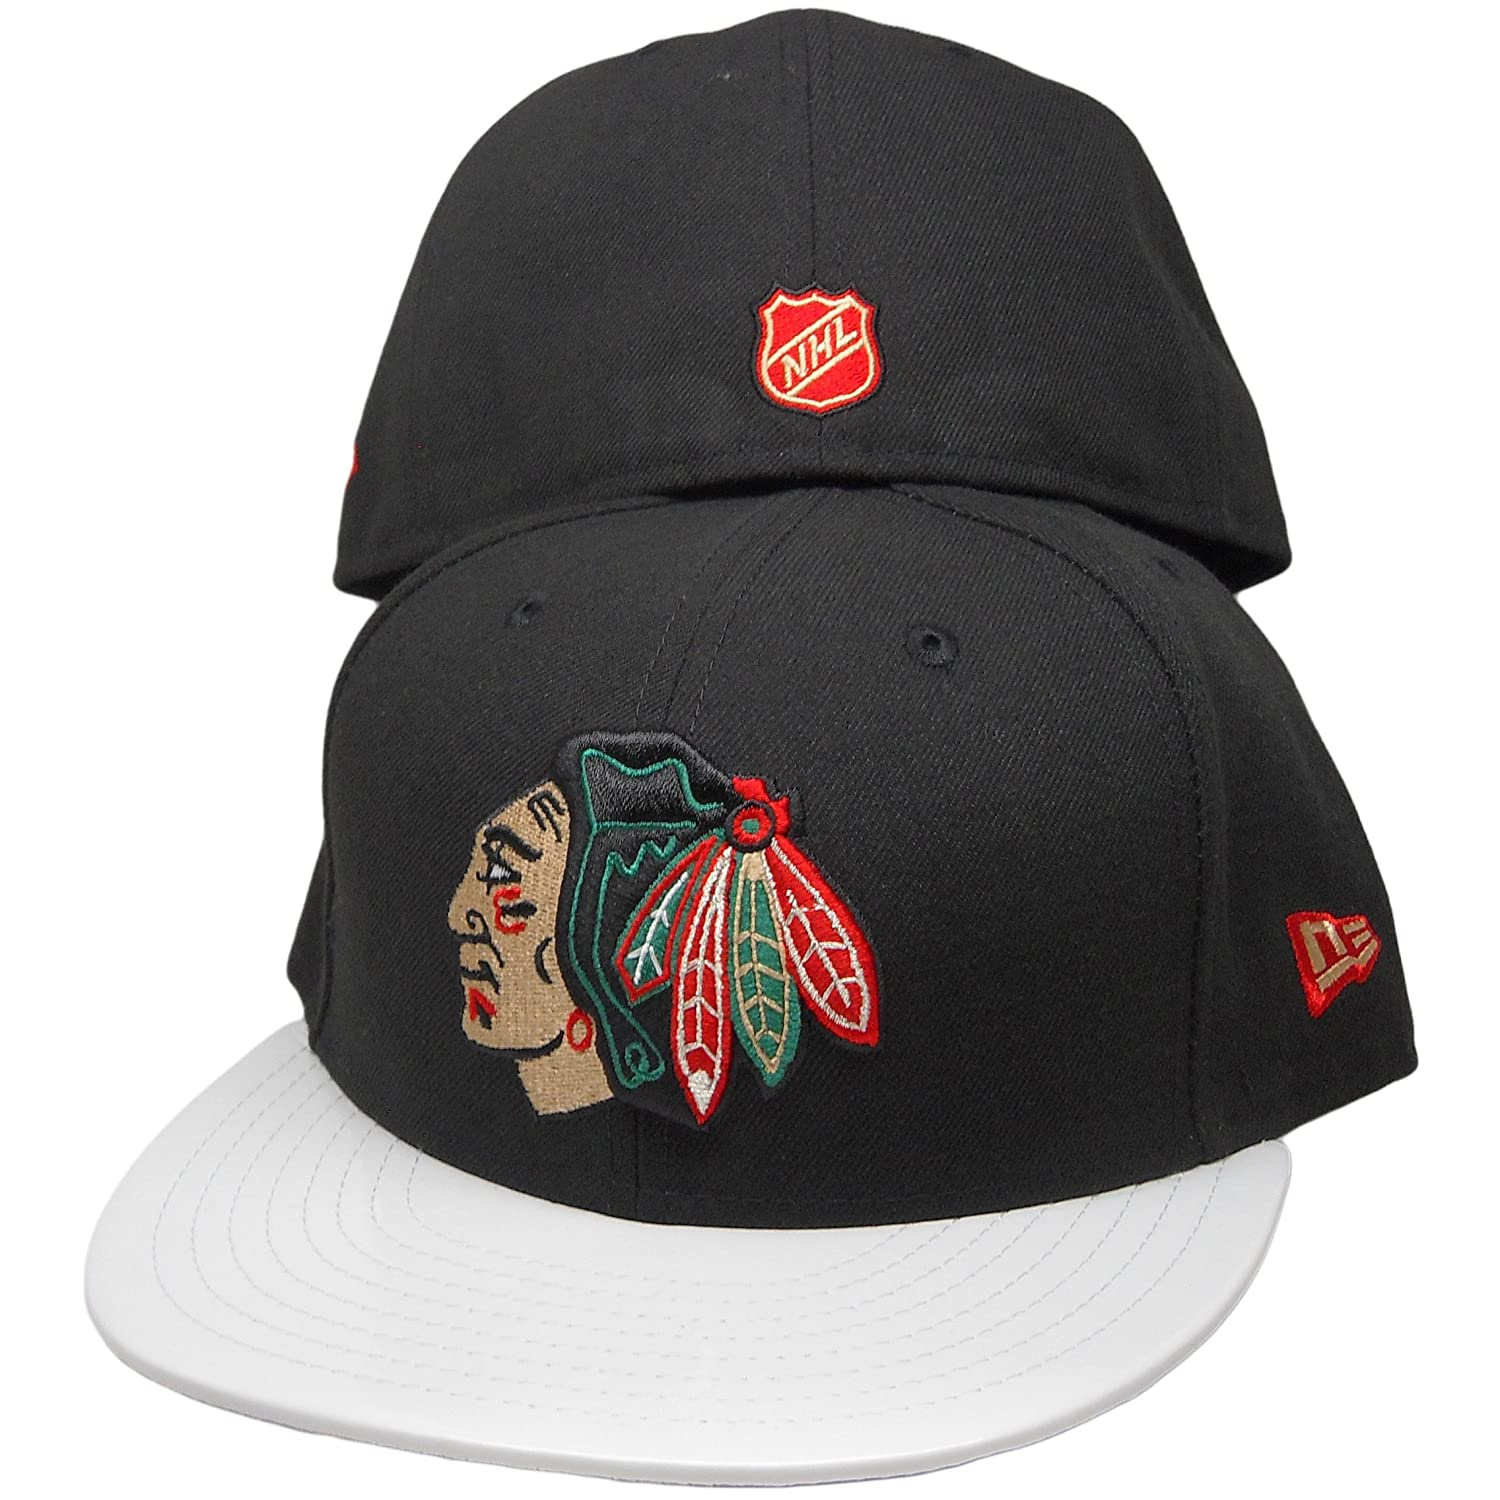 Chicago Blackhawks nueva Era 9 FIFTY gorra a medida para match ...